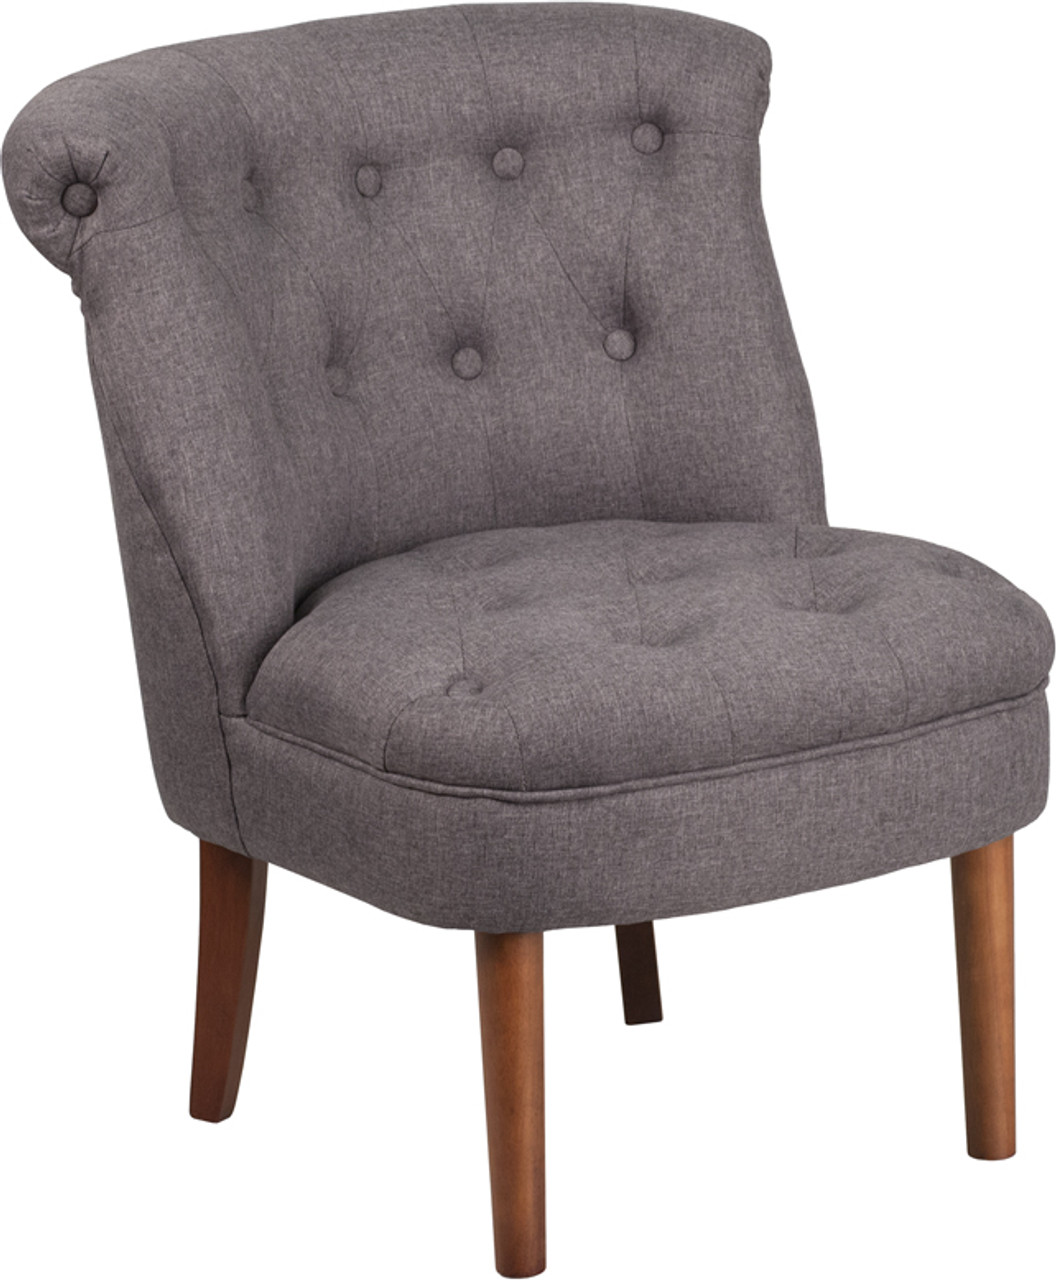 Tycoon Kenley Series Gray Fabric Tufted Chair